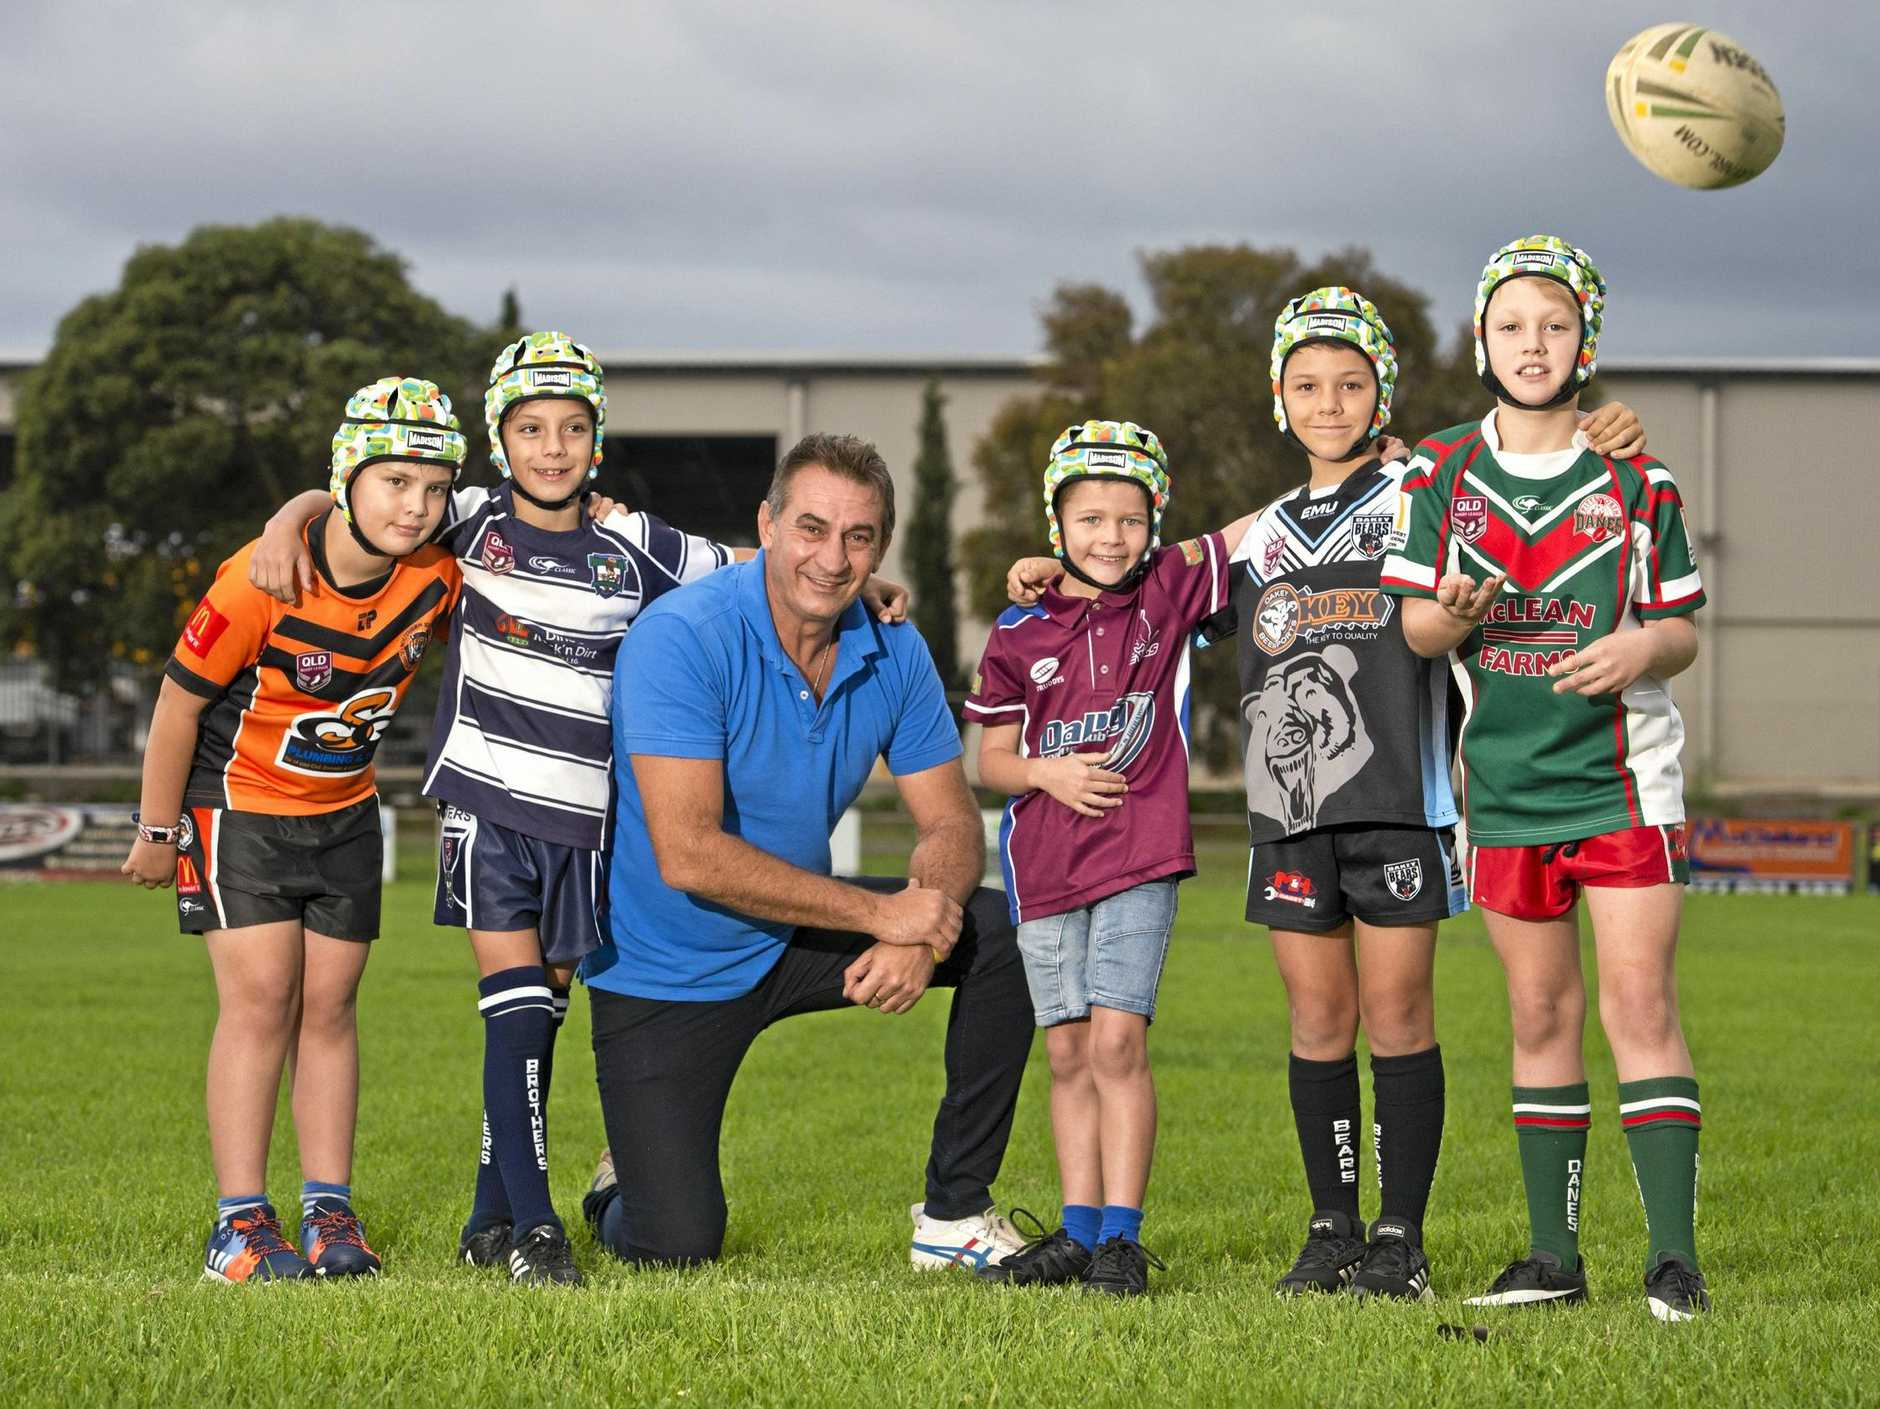 Almost 200 junior rugby league players, including (from left) Harrison Parsons (Souths), Lincoln Karaka (Brothers), Noah Marshall (Dalby), Wyatt Drury (Oakey) and Thomas Carney (Pittsworth), will today be given free protective headgear thanks to a The Great White Campaign spearheaded by campaign president Brendon Smith (centre).